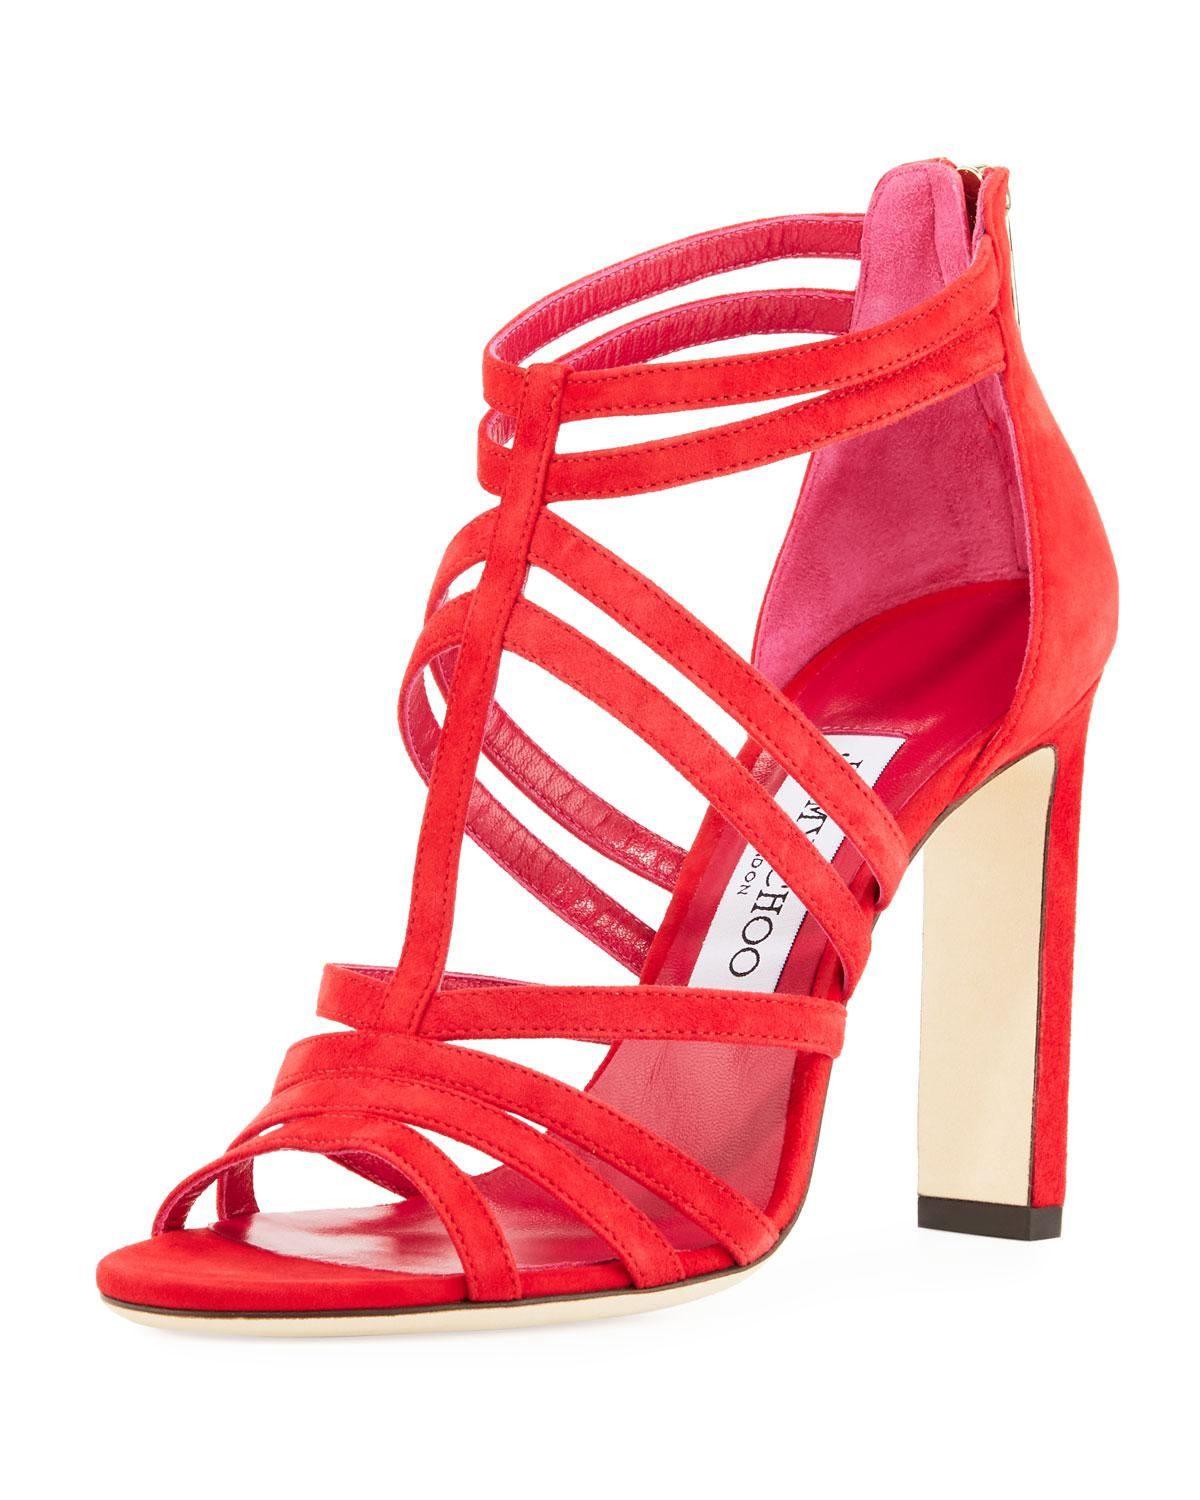 32272fd97523 Lyst - Jimmy Choo Selina Suede Strappy 100mm Sandal in Red - Save 60%